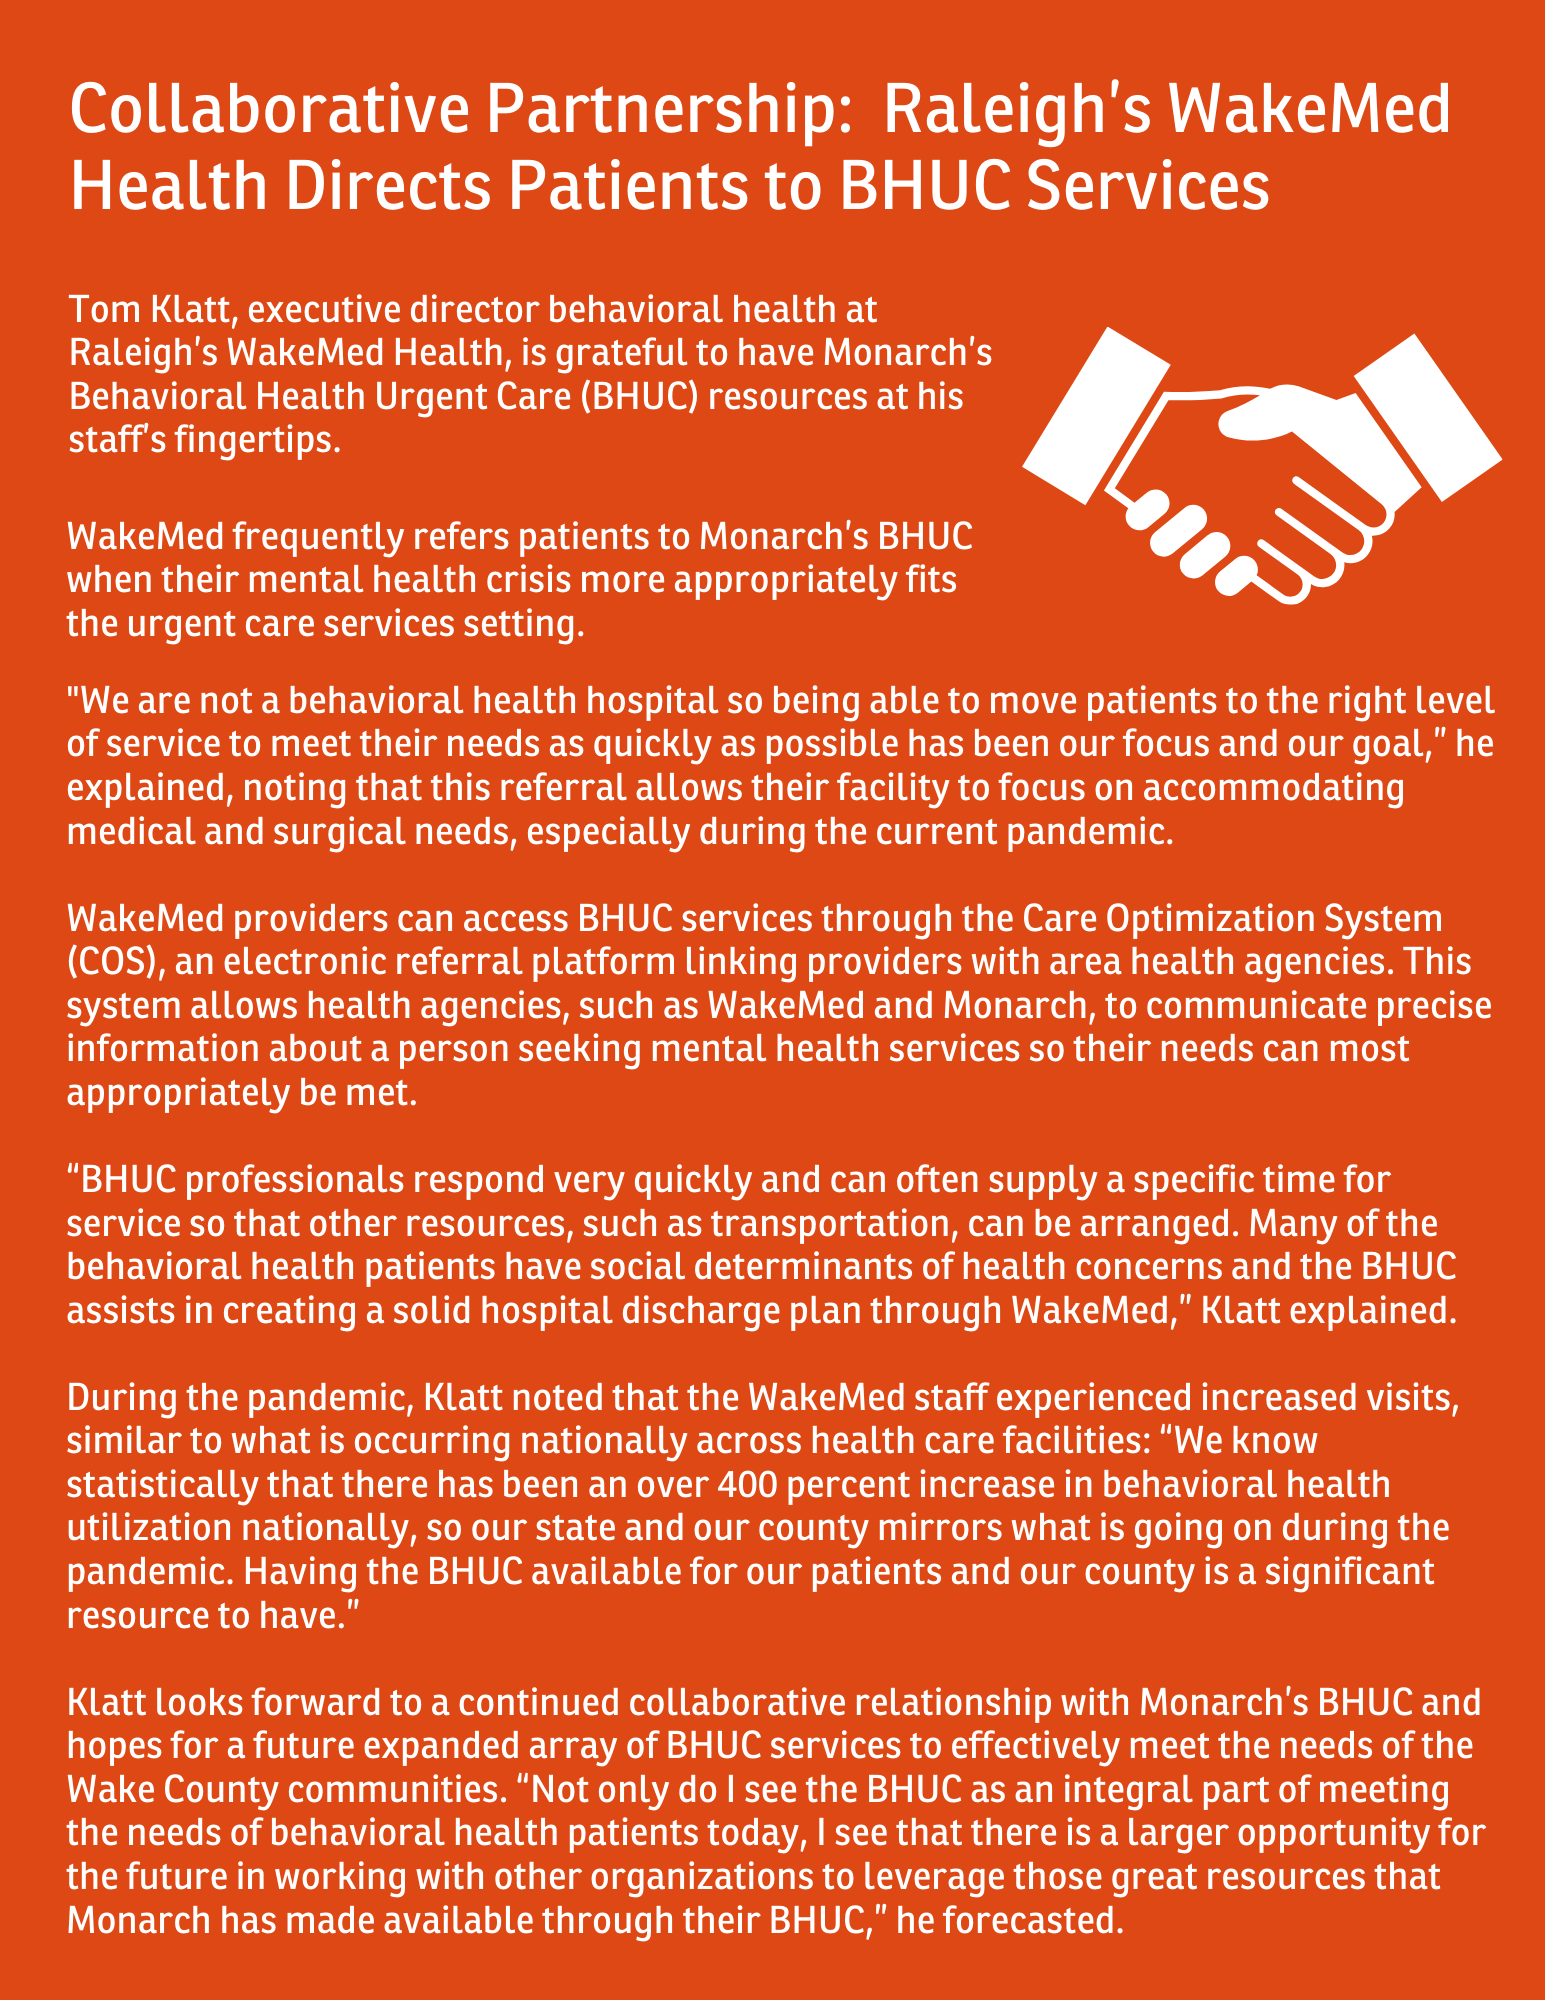 Infographic - Raleigh's WakeMed Health collaborative partnership